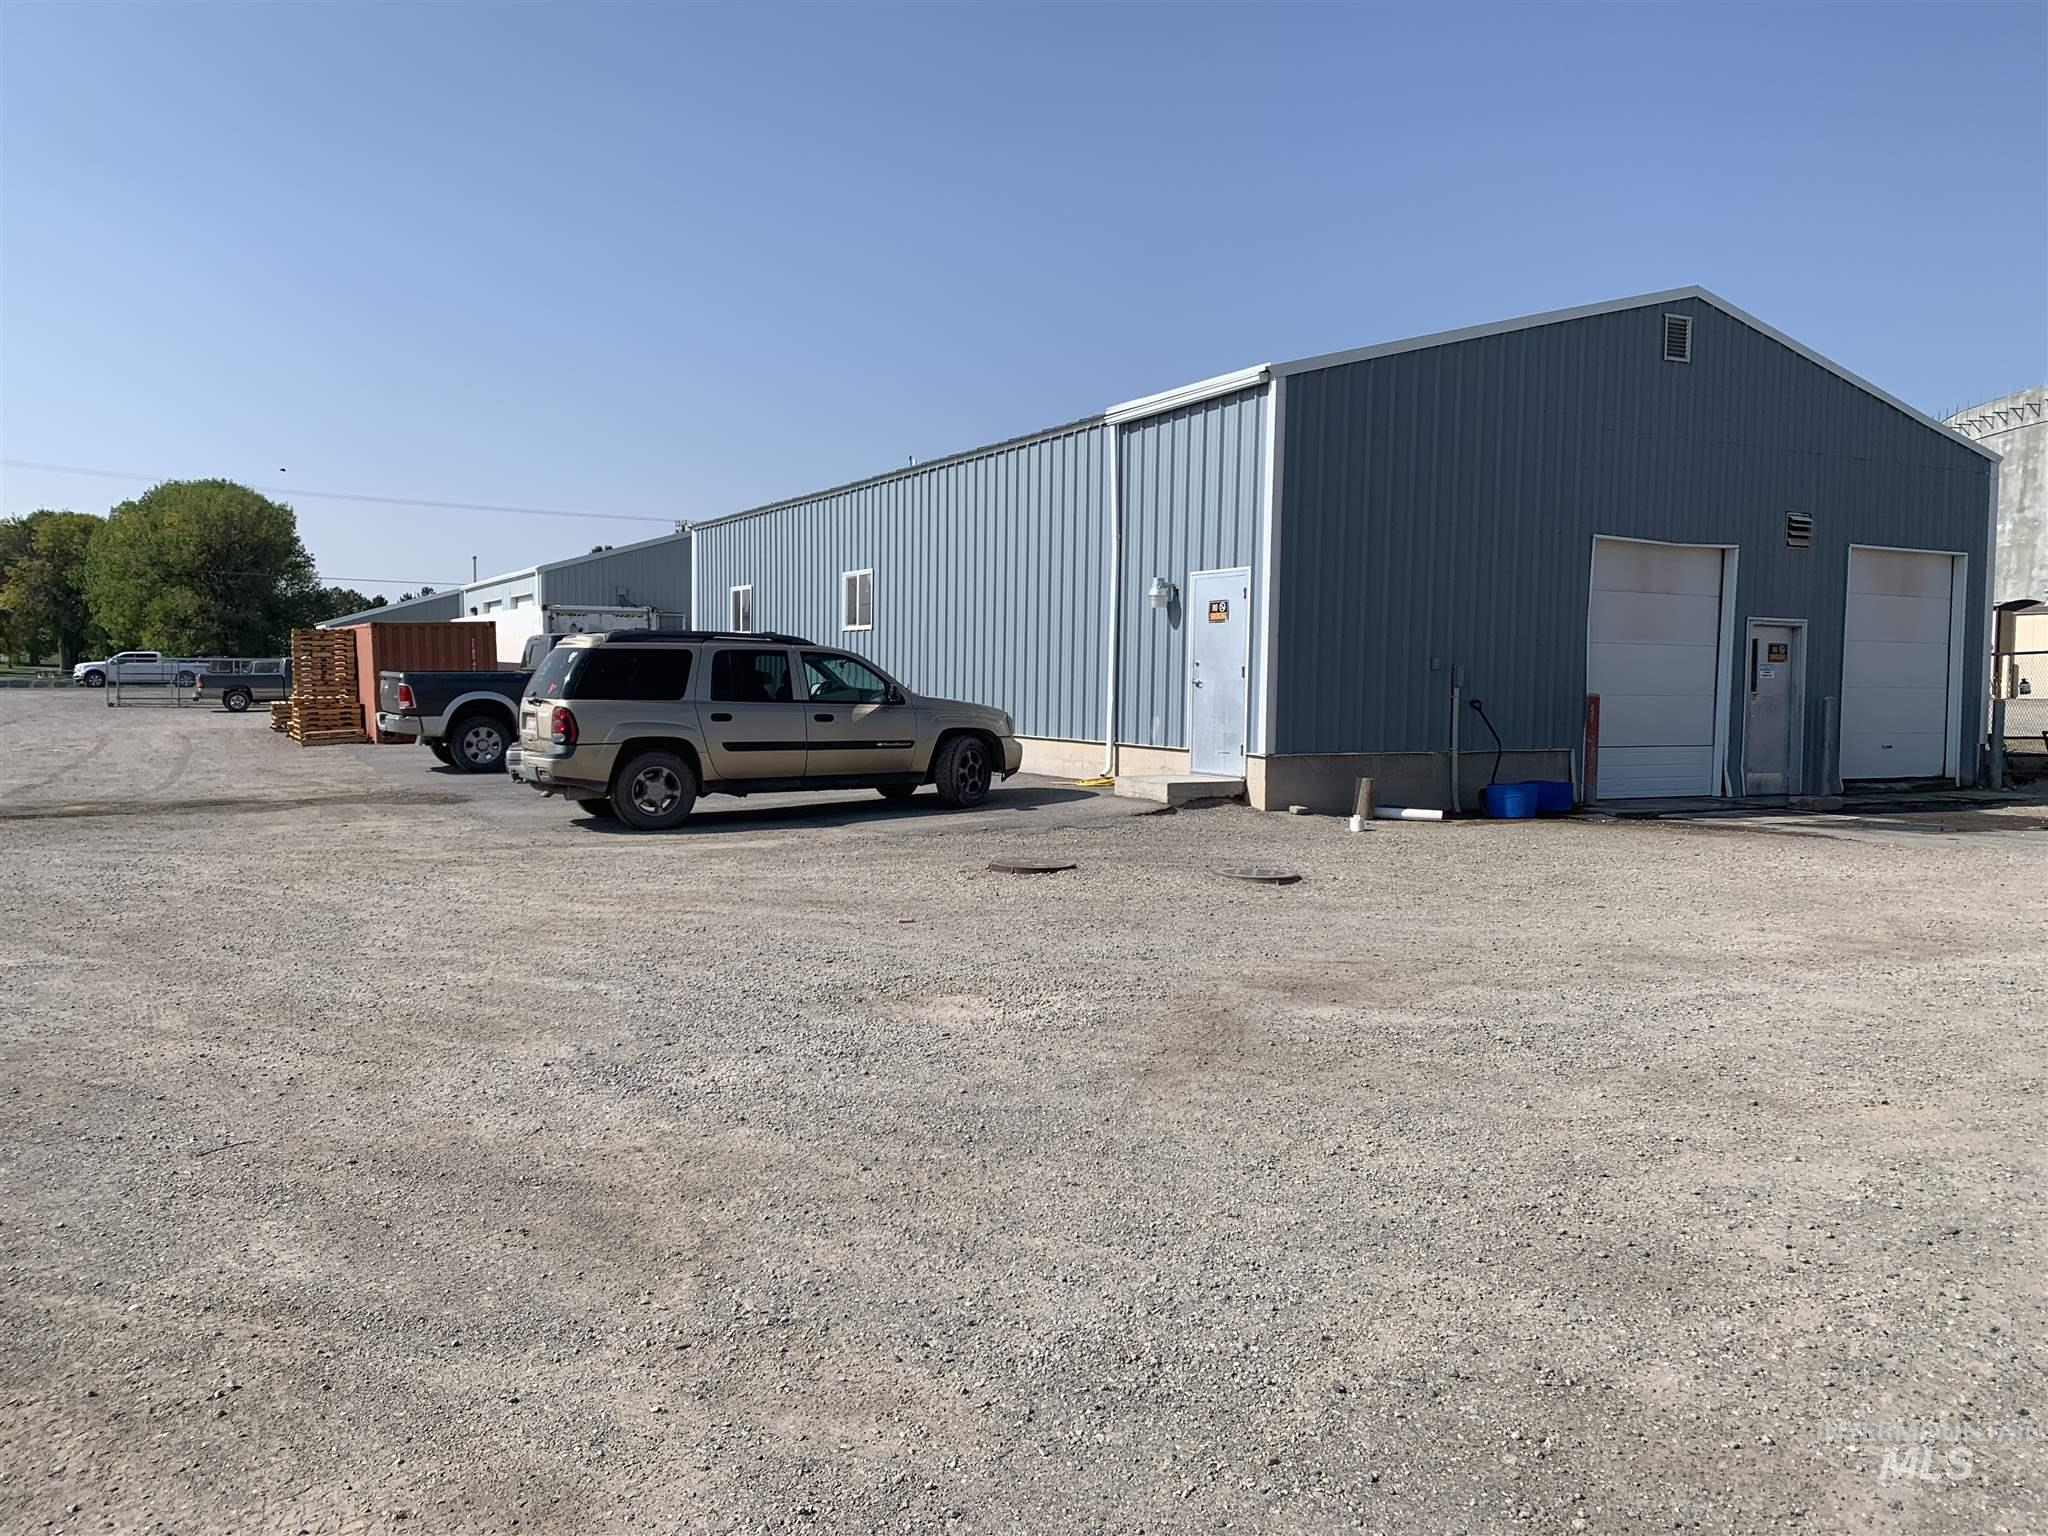 2 acres with 2 each 40' X 60' Buildings with coolers and rails for processing meat.